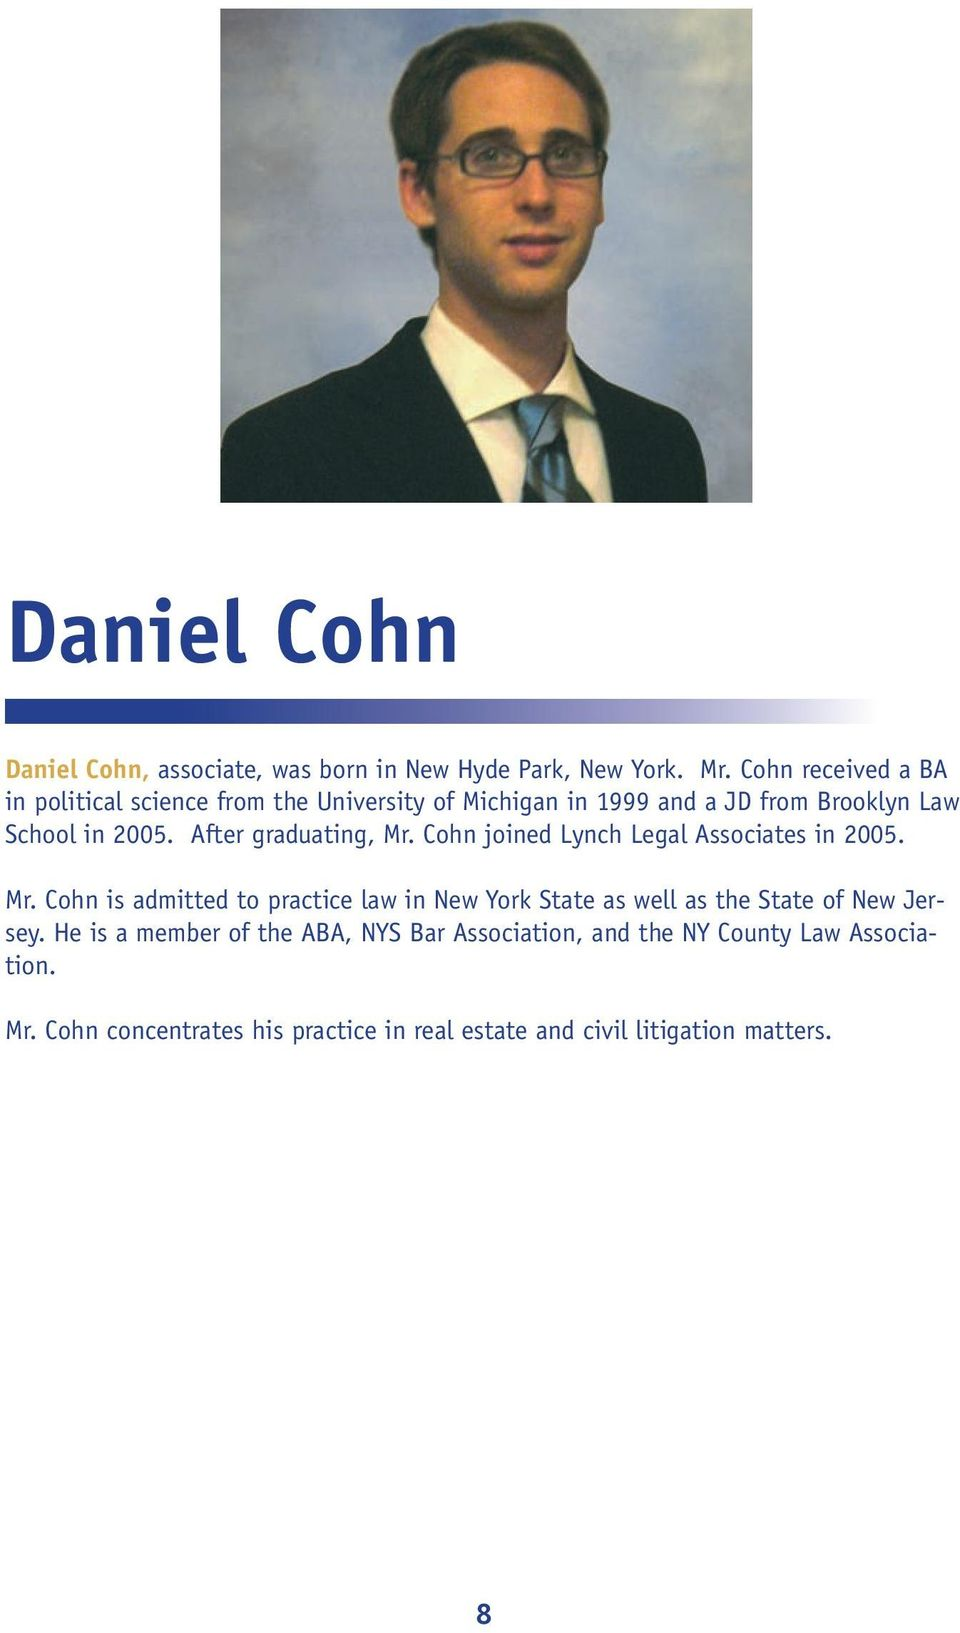 After graduating, Mr. Cohn joined Lynch Legal Associates in 2005. Mr. Cohn is admitted to practice law in New York State as well as the State of New Jersey.